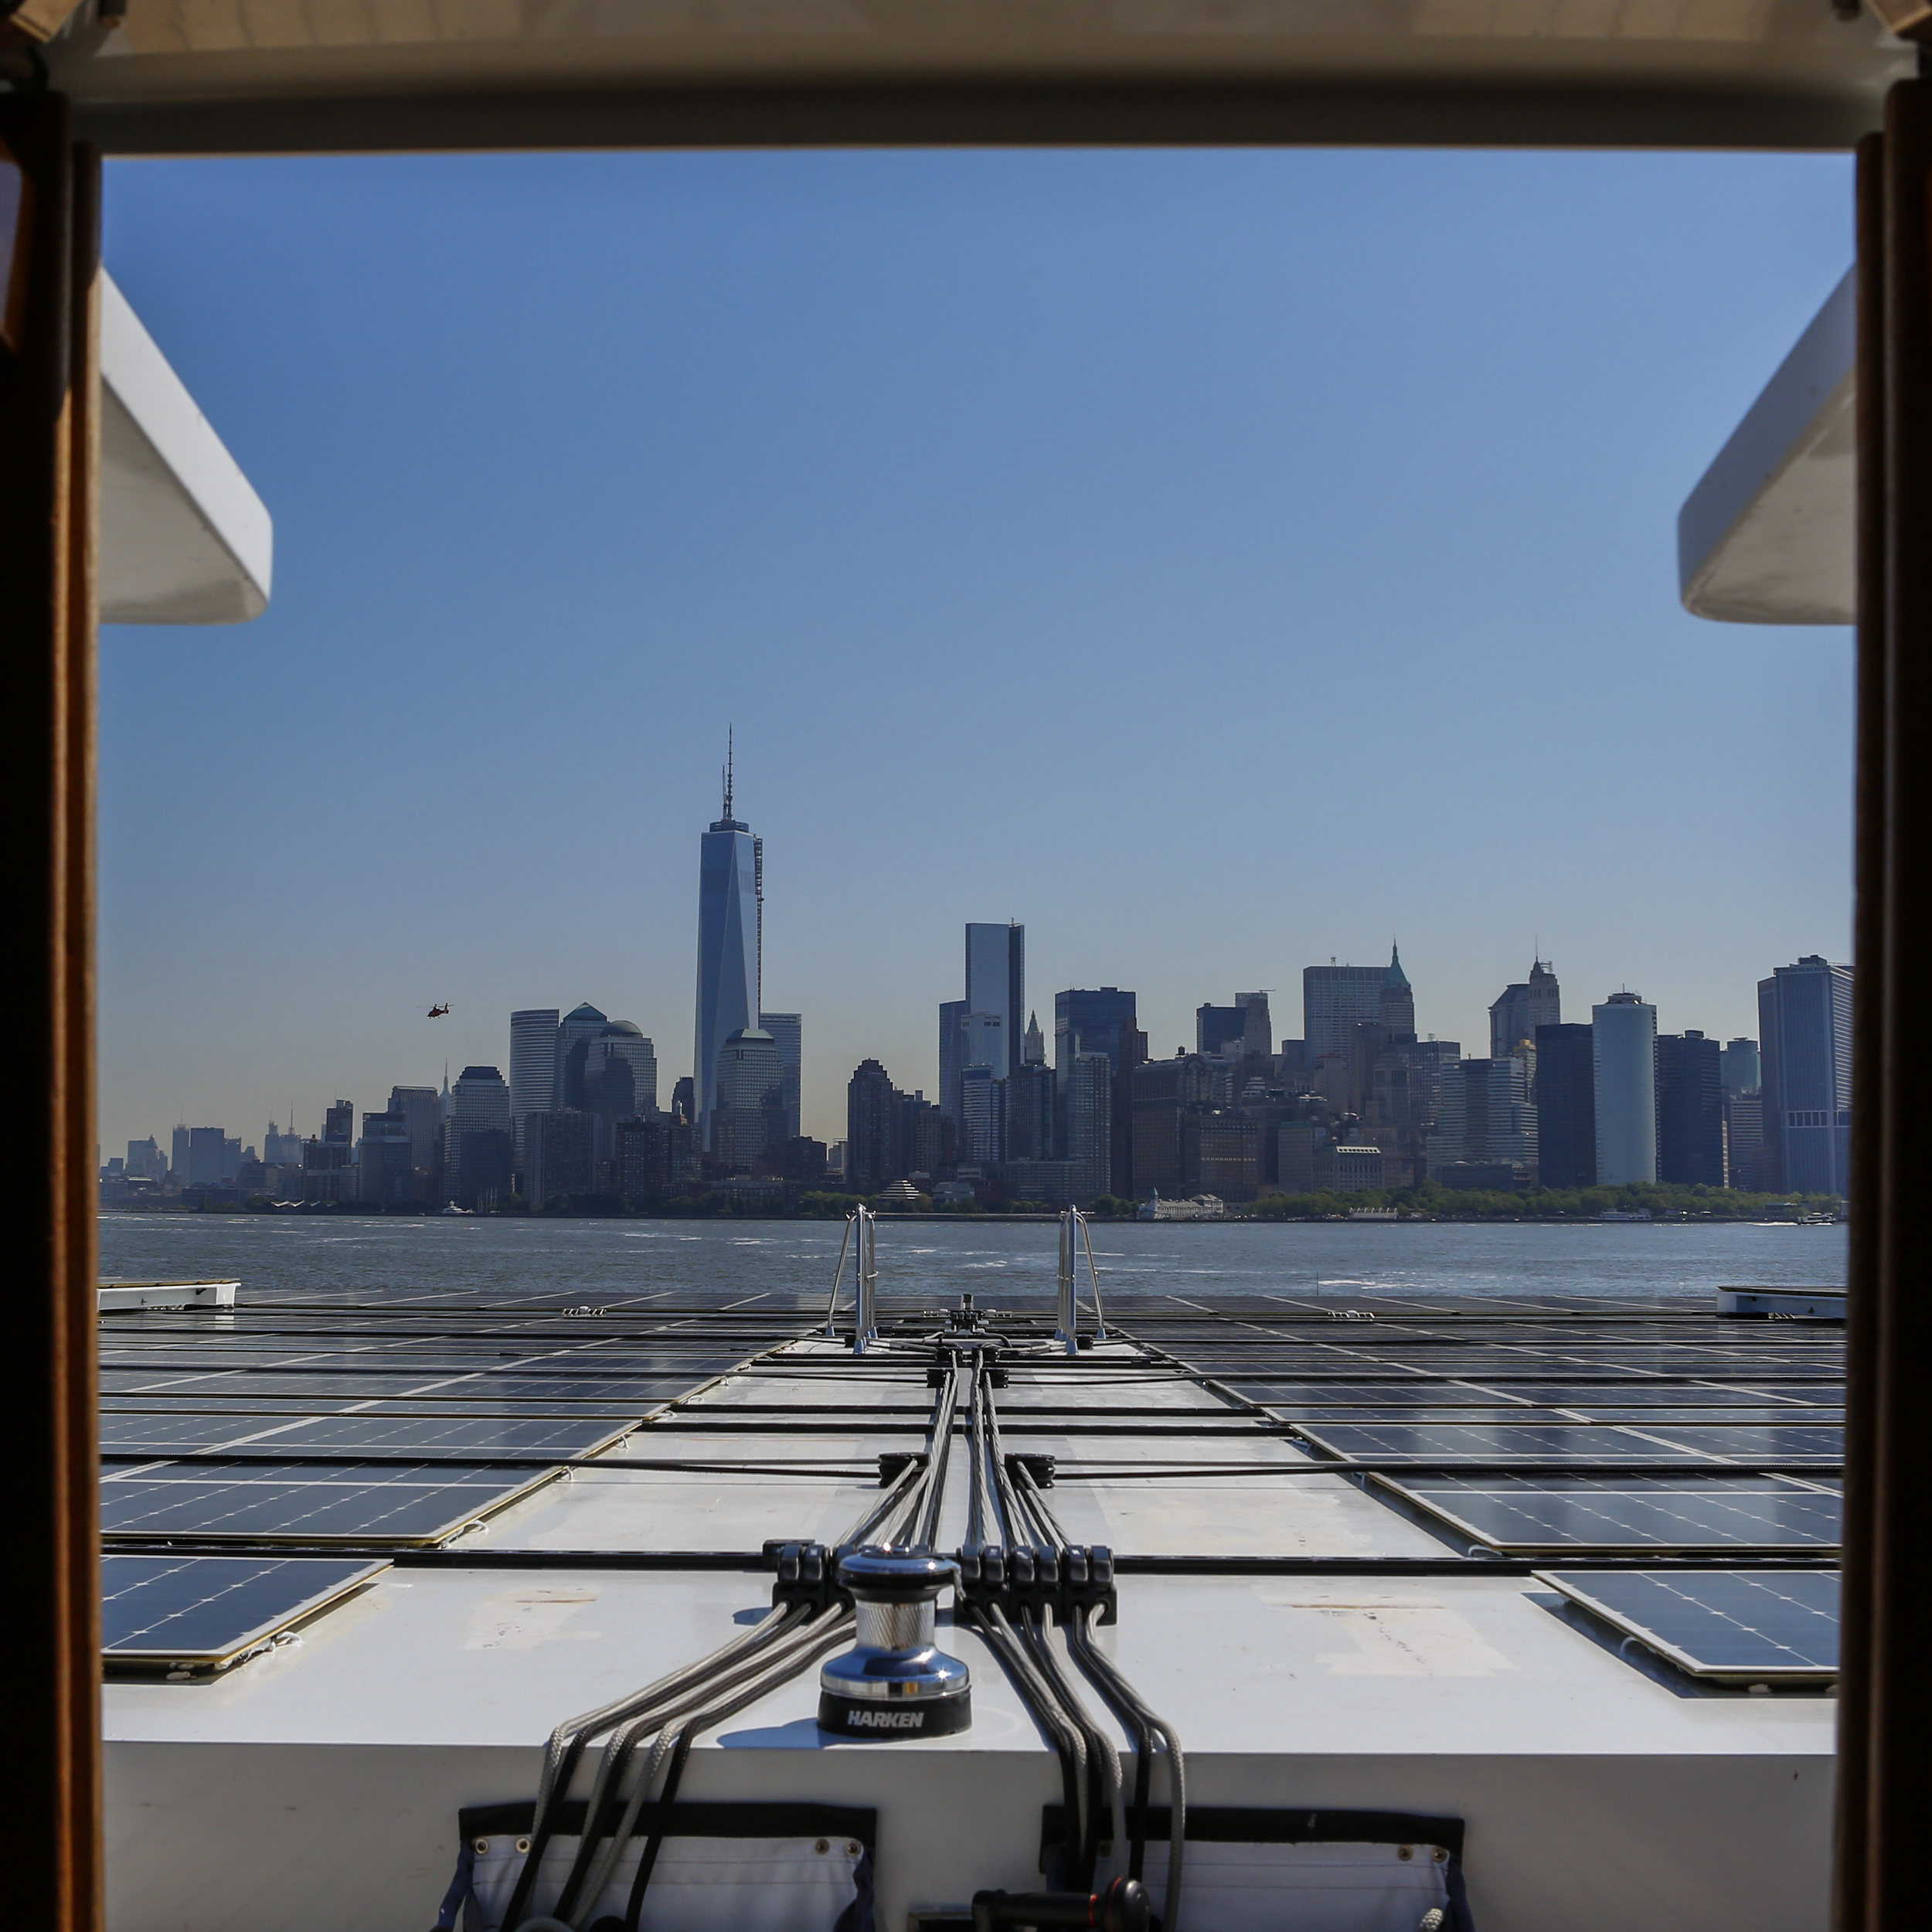 Manhattan skyline from the world's largest solar boat, a catamaran named Tûranor on Thursday, June 20, 2013.